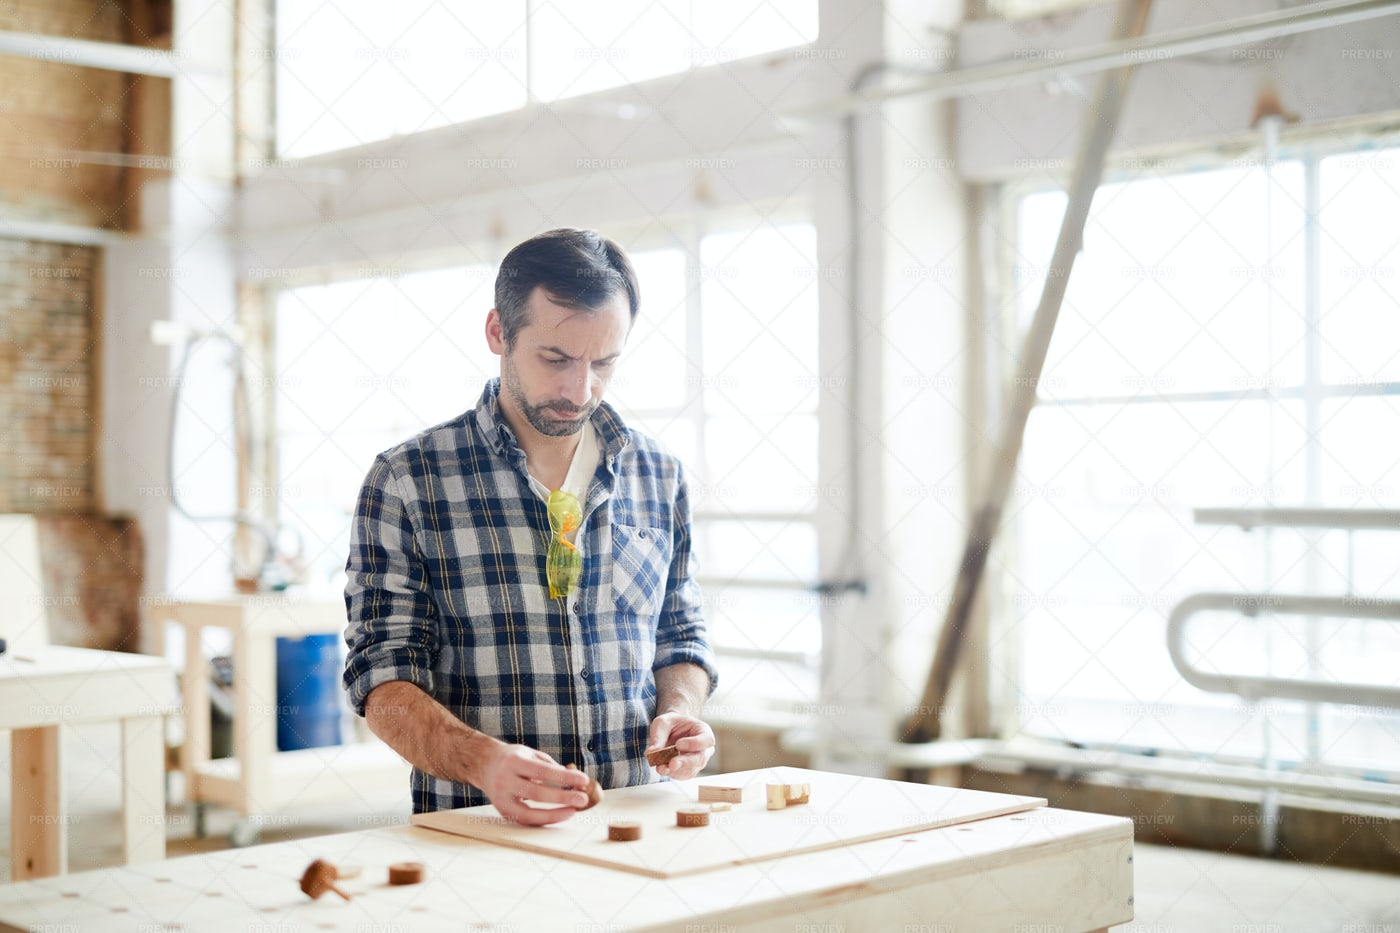 Busy Workman Comparing Small Wooden...: Stock Photos